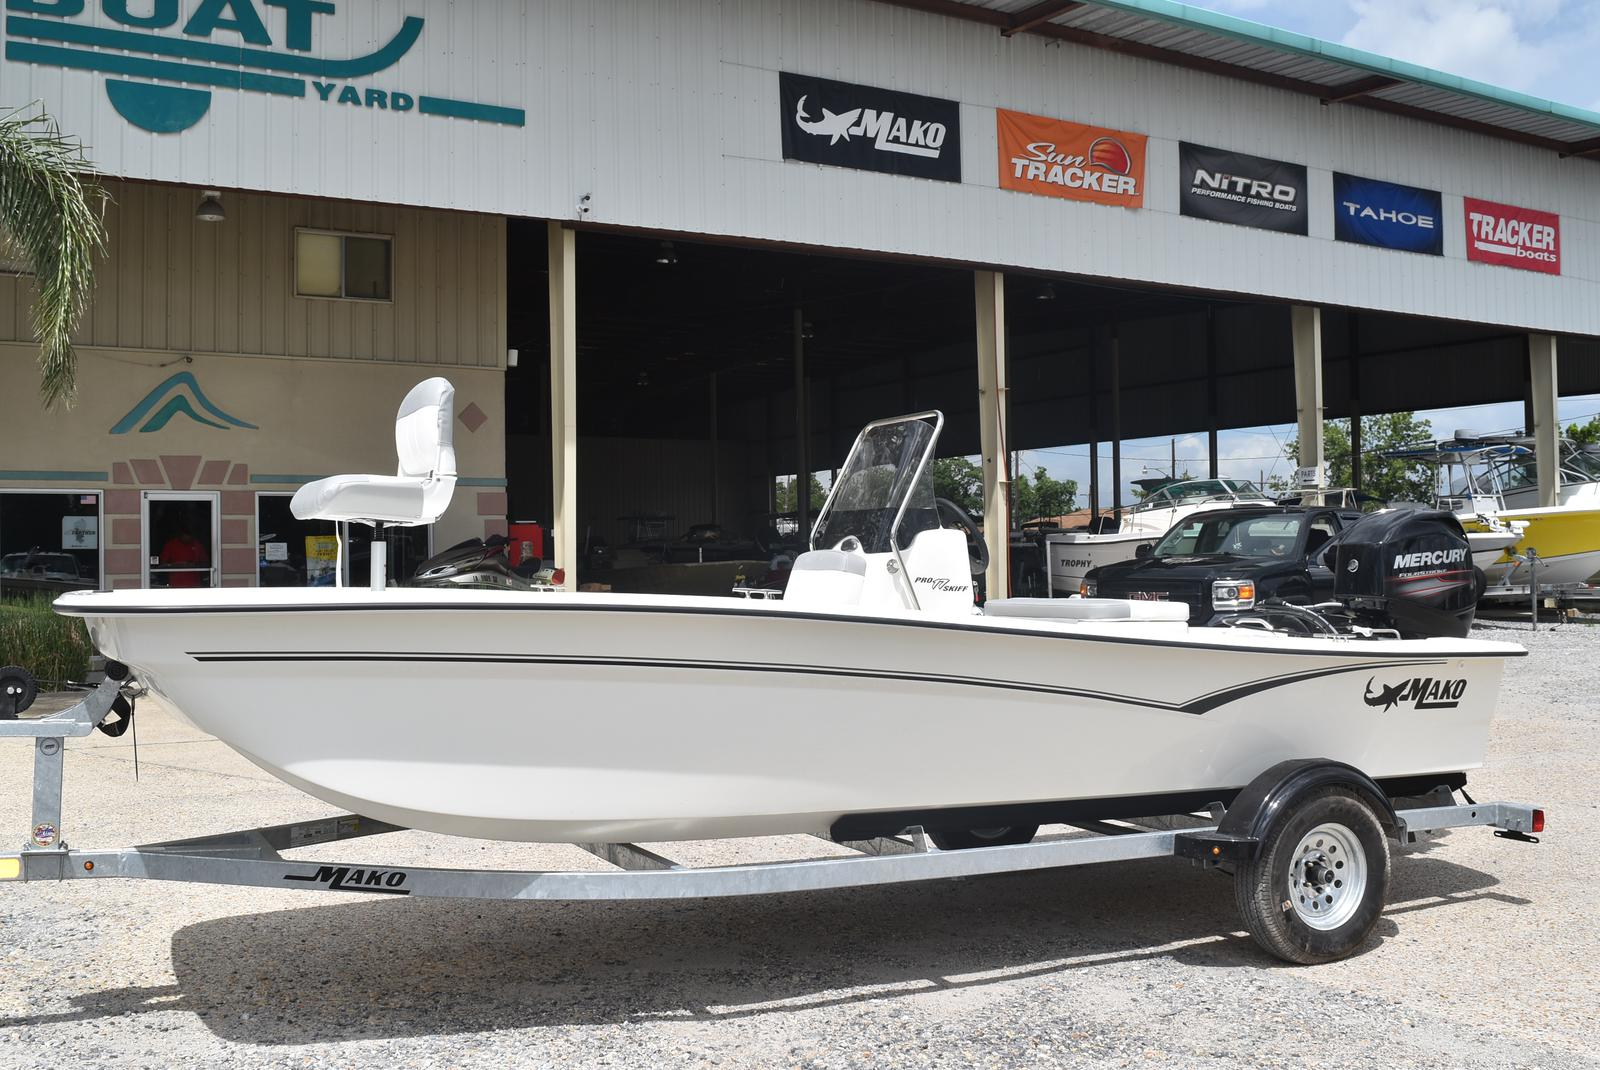 2020 Mako boat for sale, model of the boat is Pro Skiff 17, 75 ELPT & Image # 119 of 702